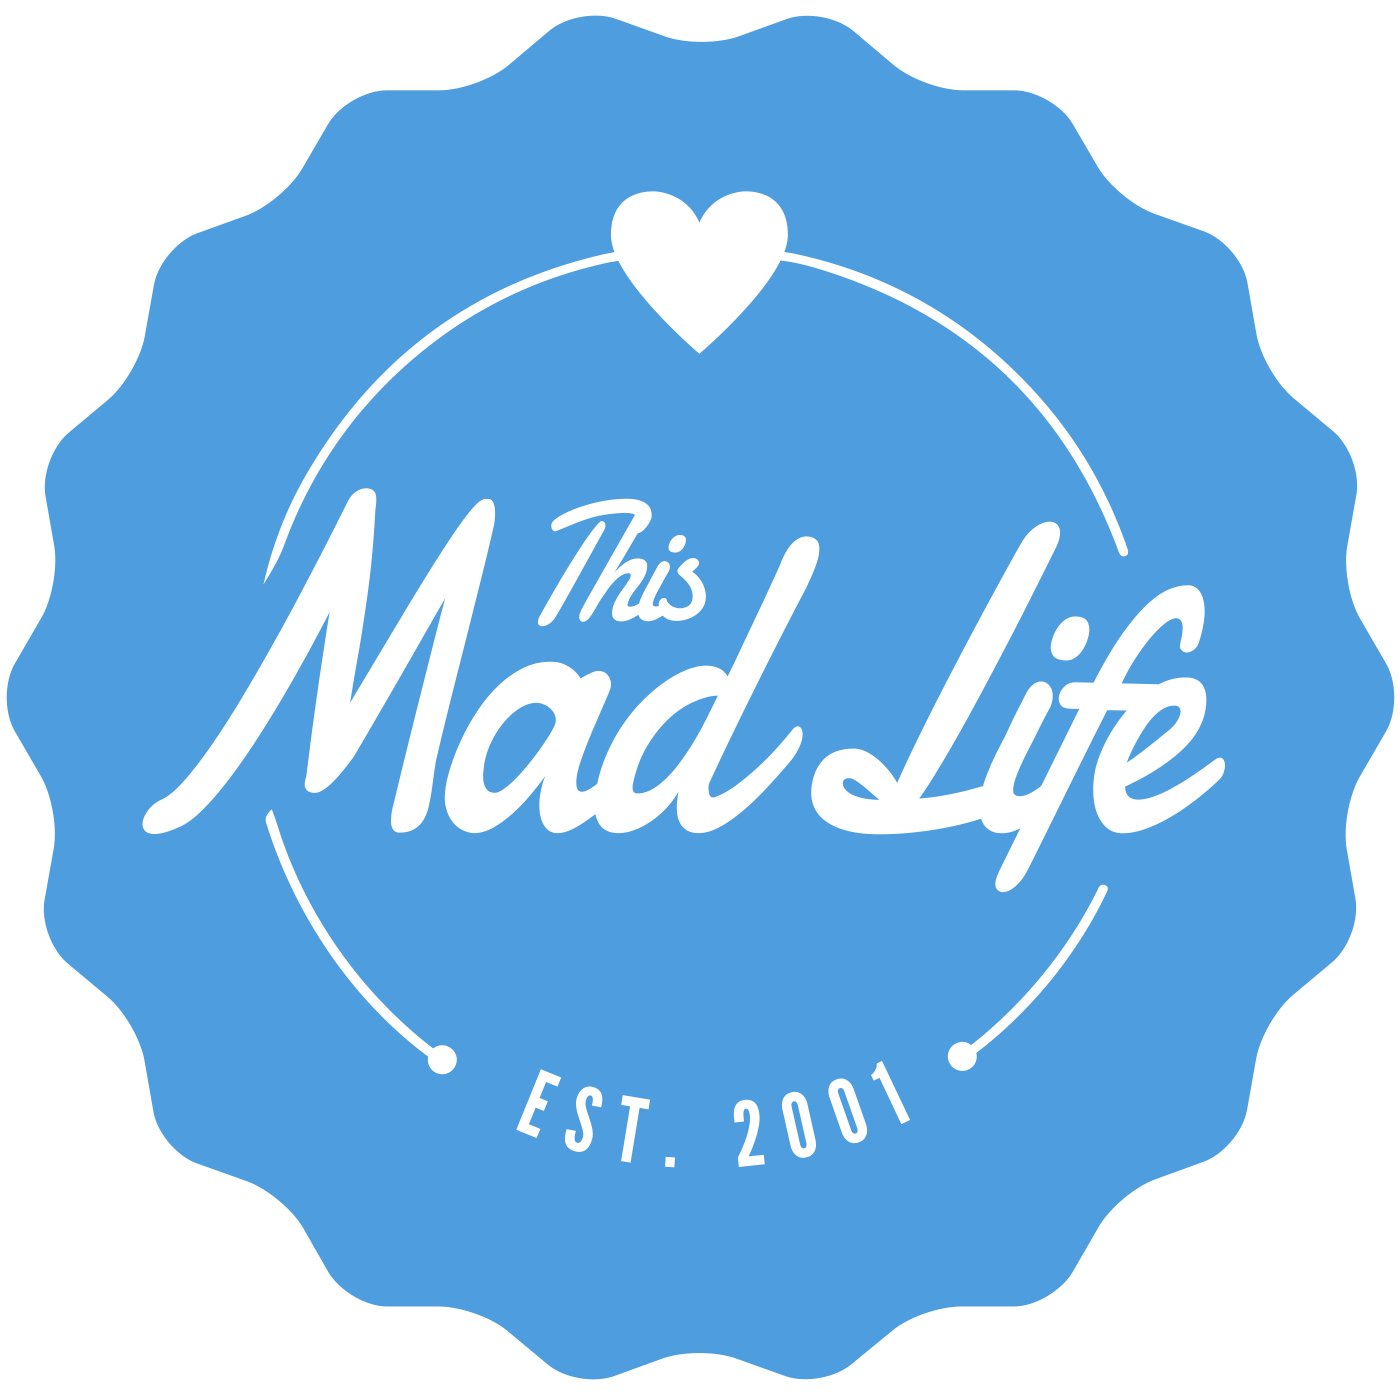 This Mad Life